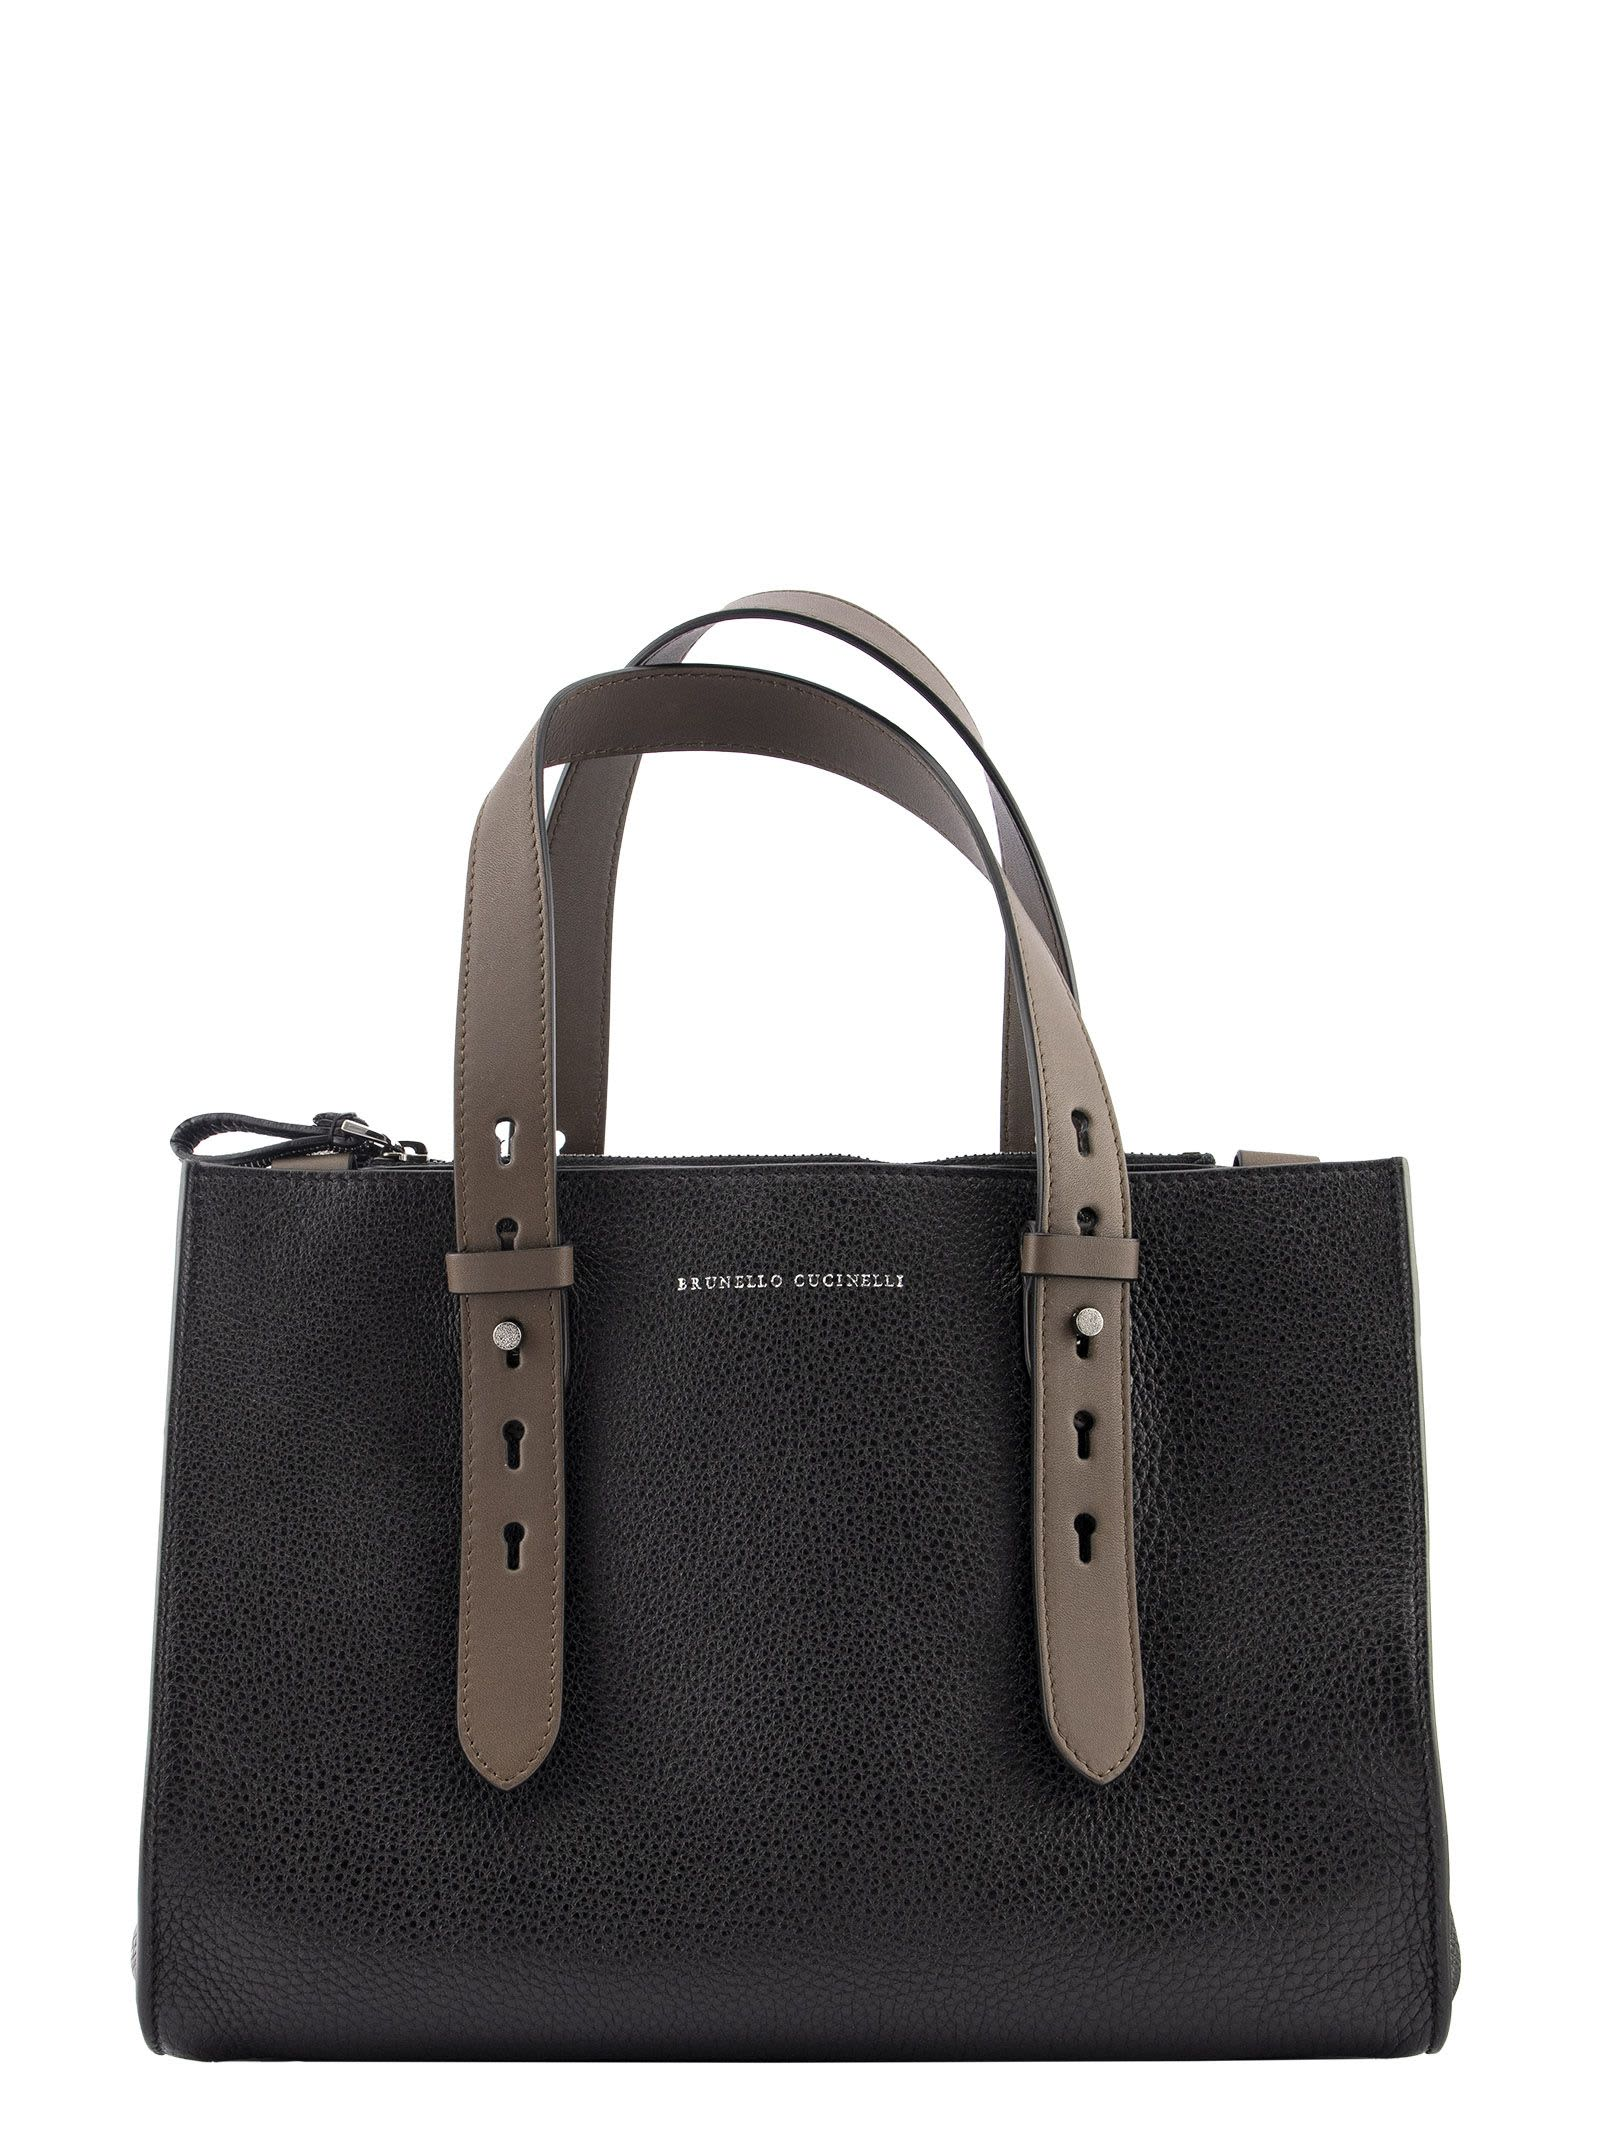 Brunello Cucinelli SHOPPER BAG TEXTURE CALFSKIN BAG WITH MONILI AND ADJUSTABLE HANDLES